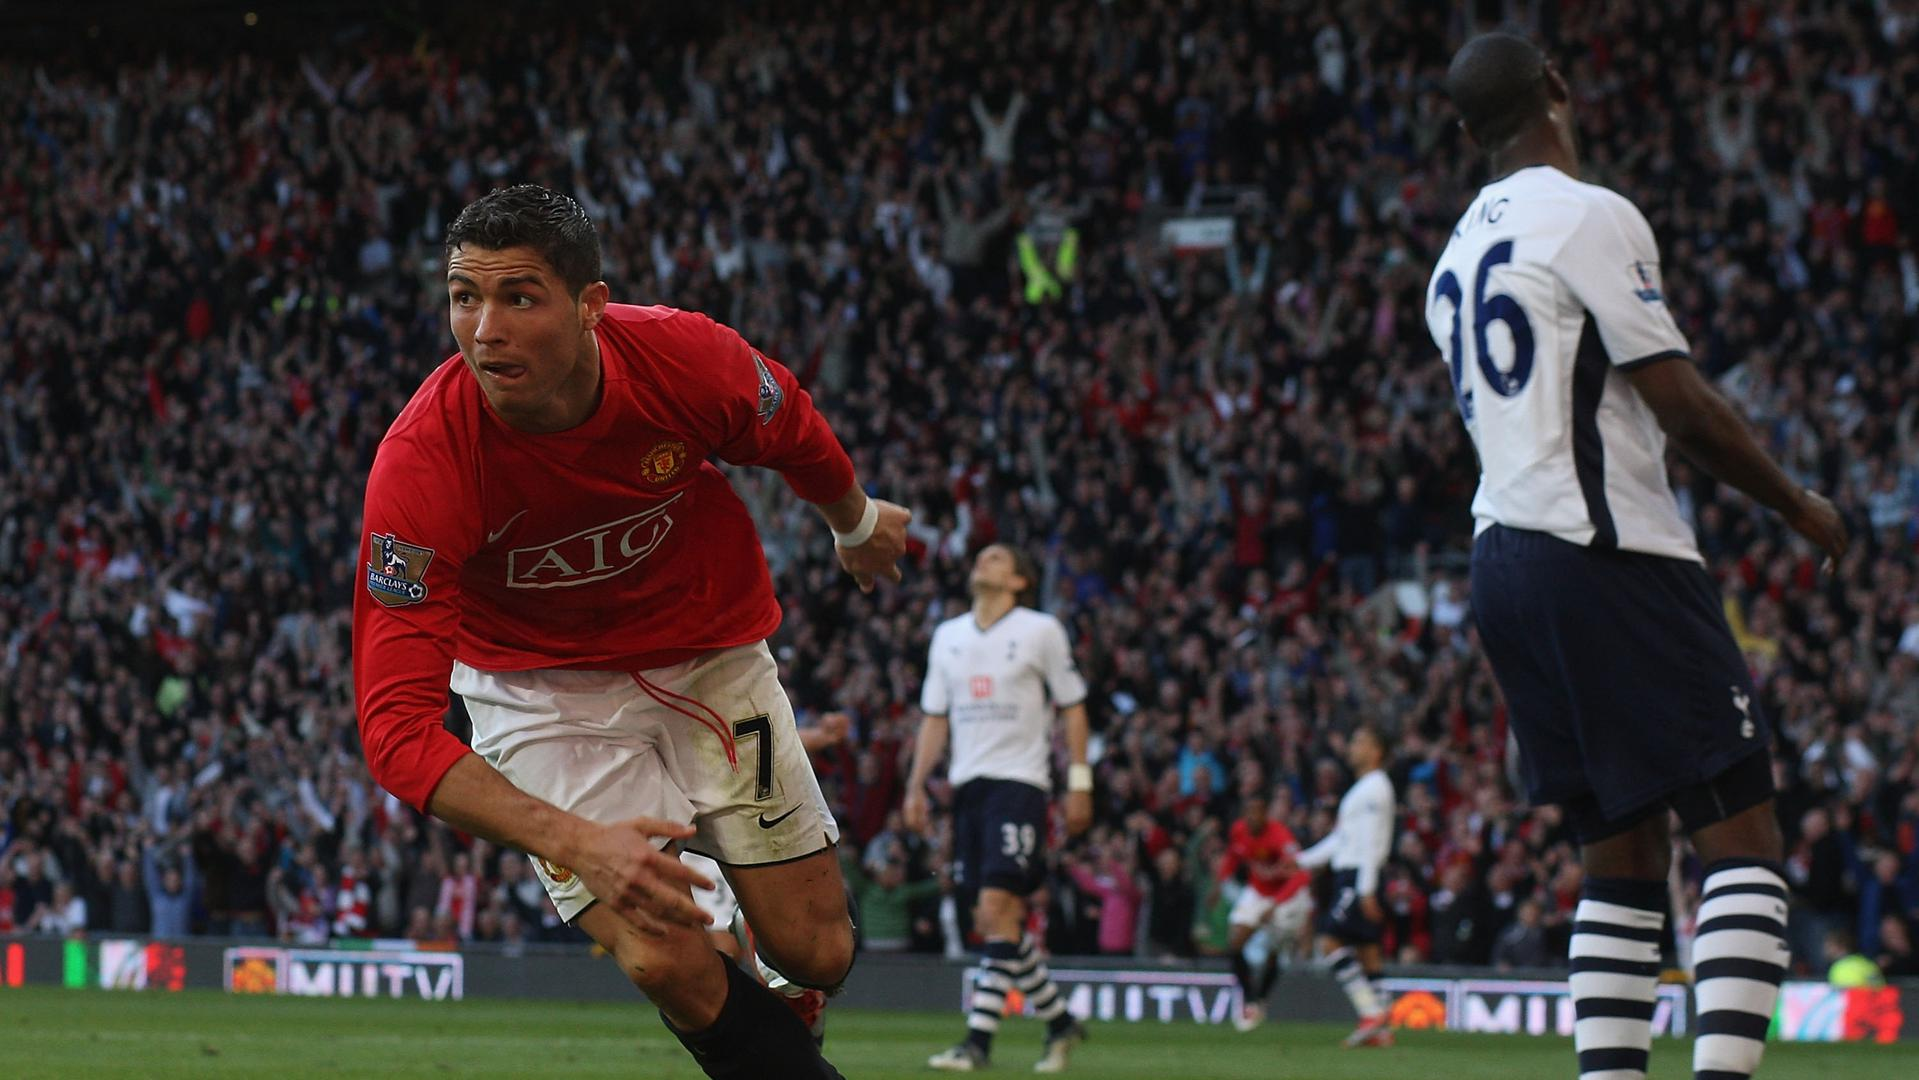 watch manchester united vs tottenham live online free